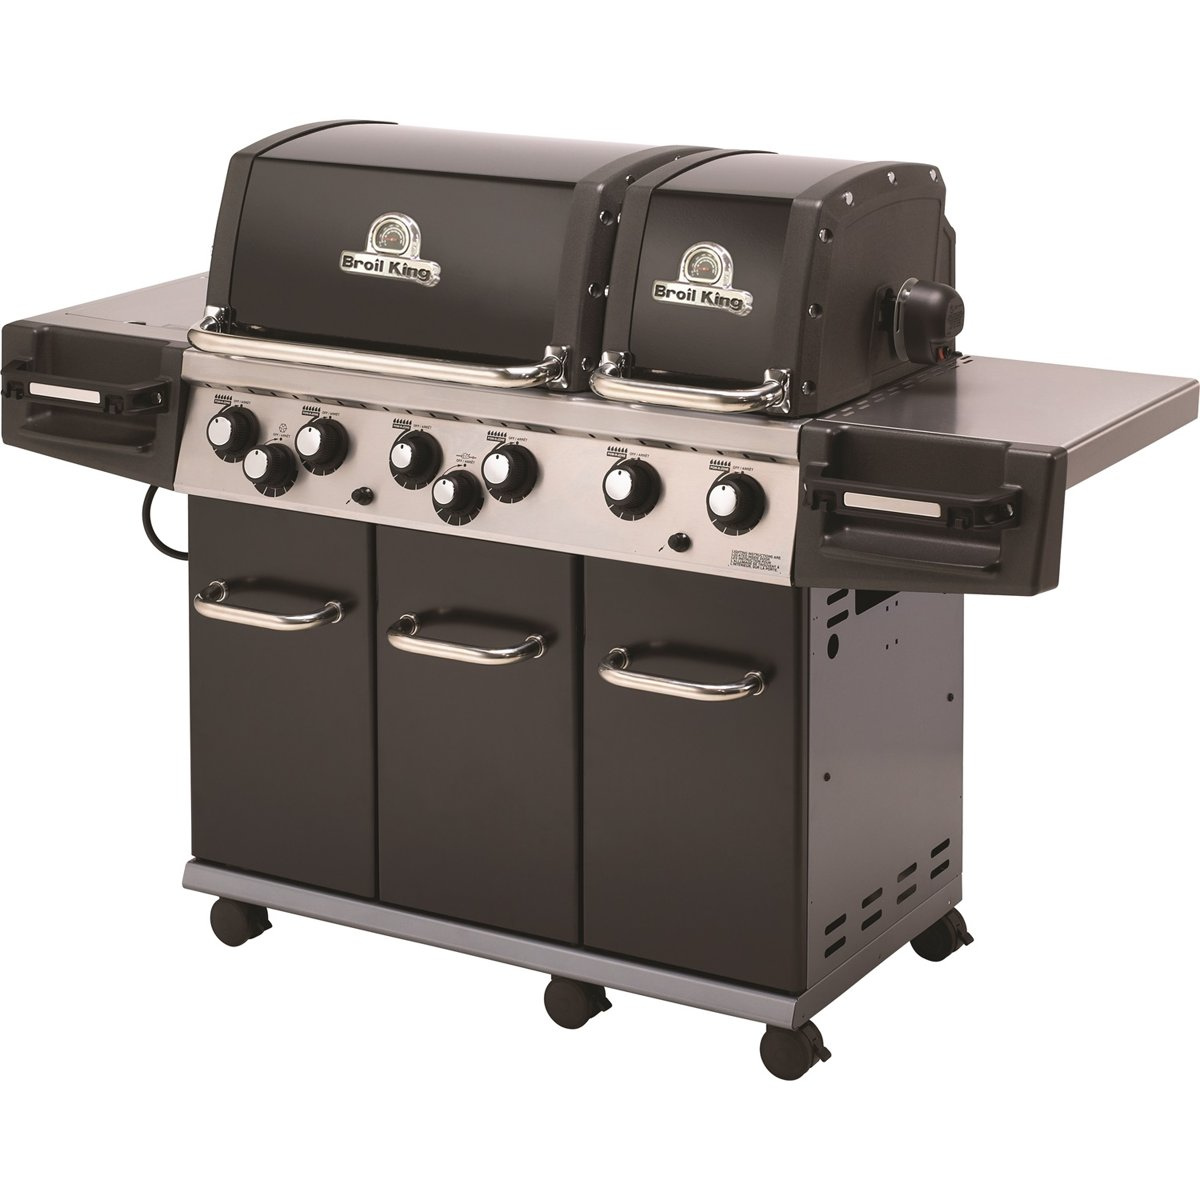 Broil King Regal XL gasbarbecue